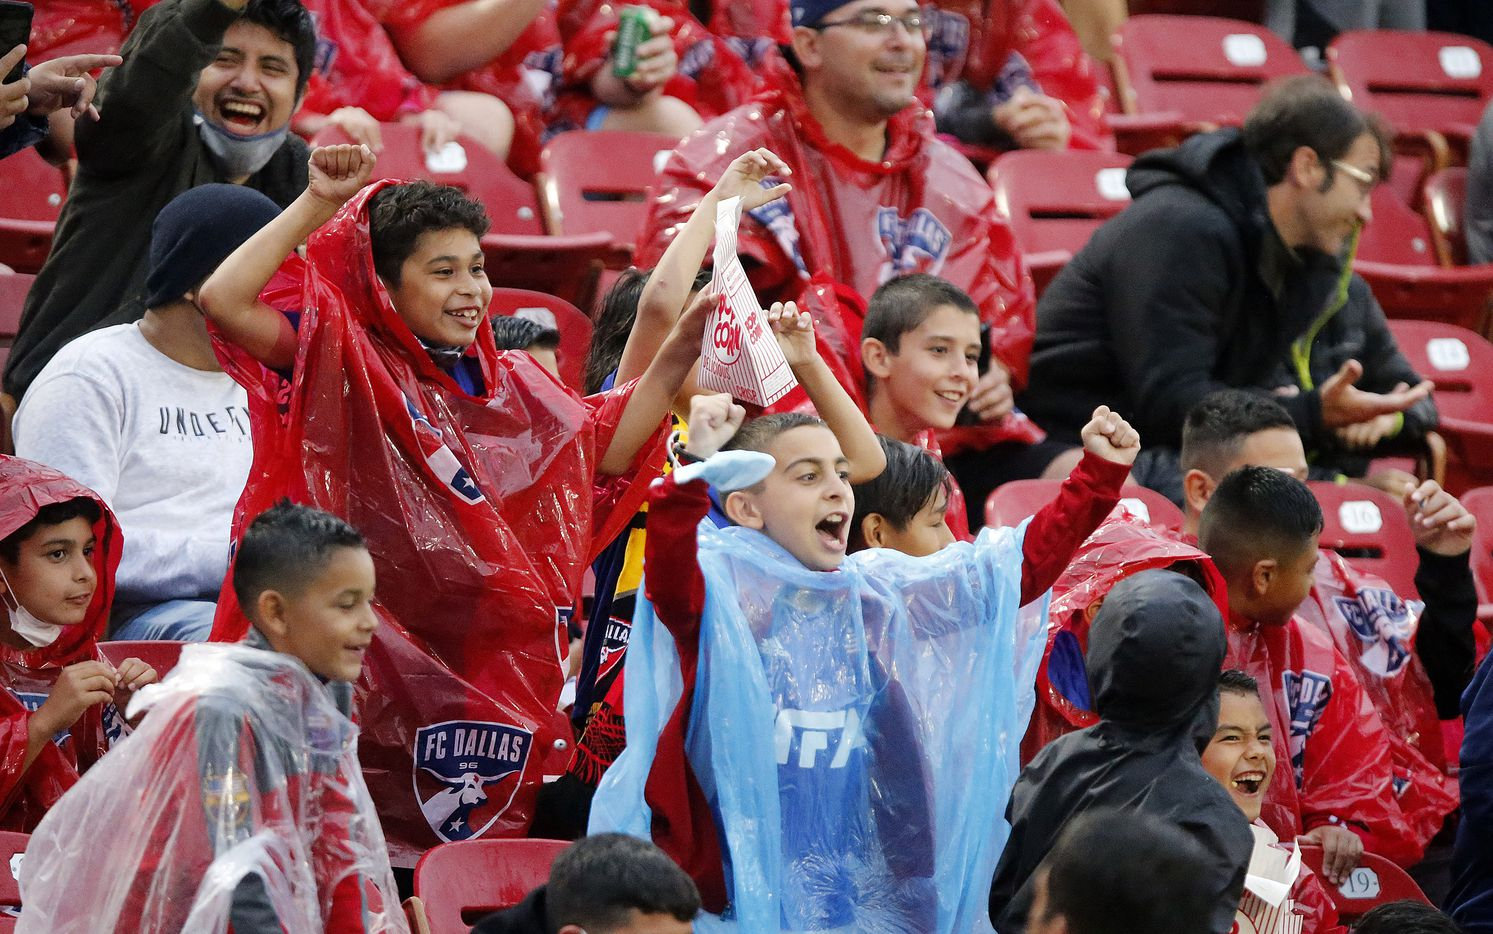 FC Dallas fans cheer an opportunity to score on a penalty kick during the first half as FC Dallas hosted Real Salt Lake at Toyota Stadium in Frisco on Saturday, May 22, 2021. (Stewart F. House/Special Contributor)